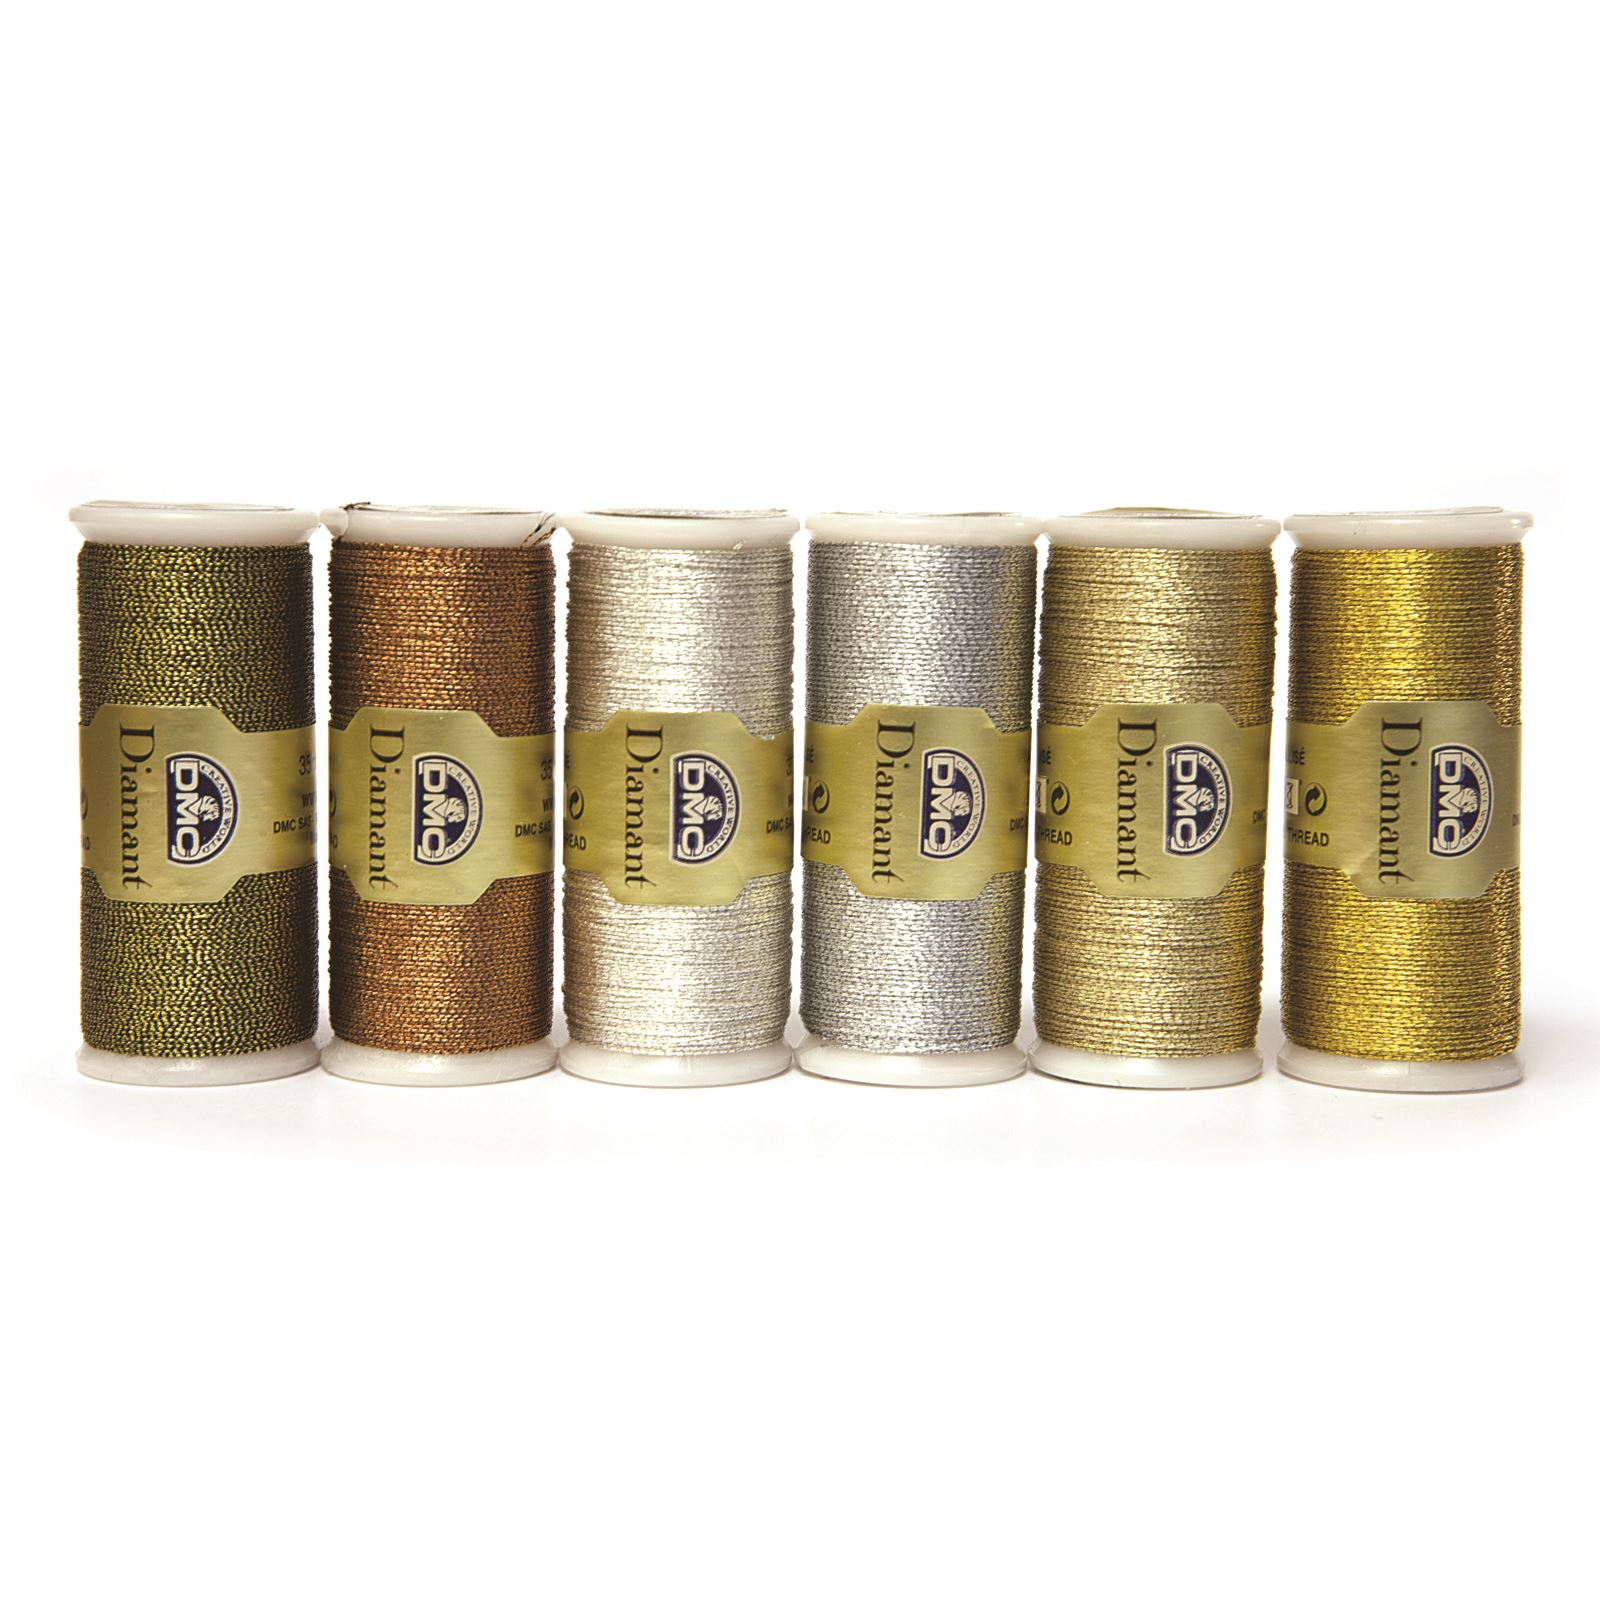 DMC-Diamant-Metallic-Embroidery-Thread-35m-Spool-Cross-Stitch thumbnail 28